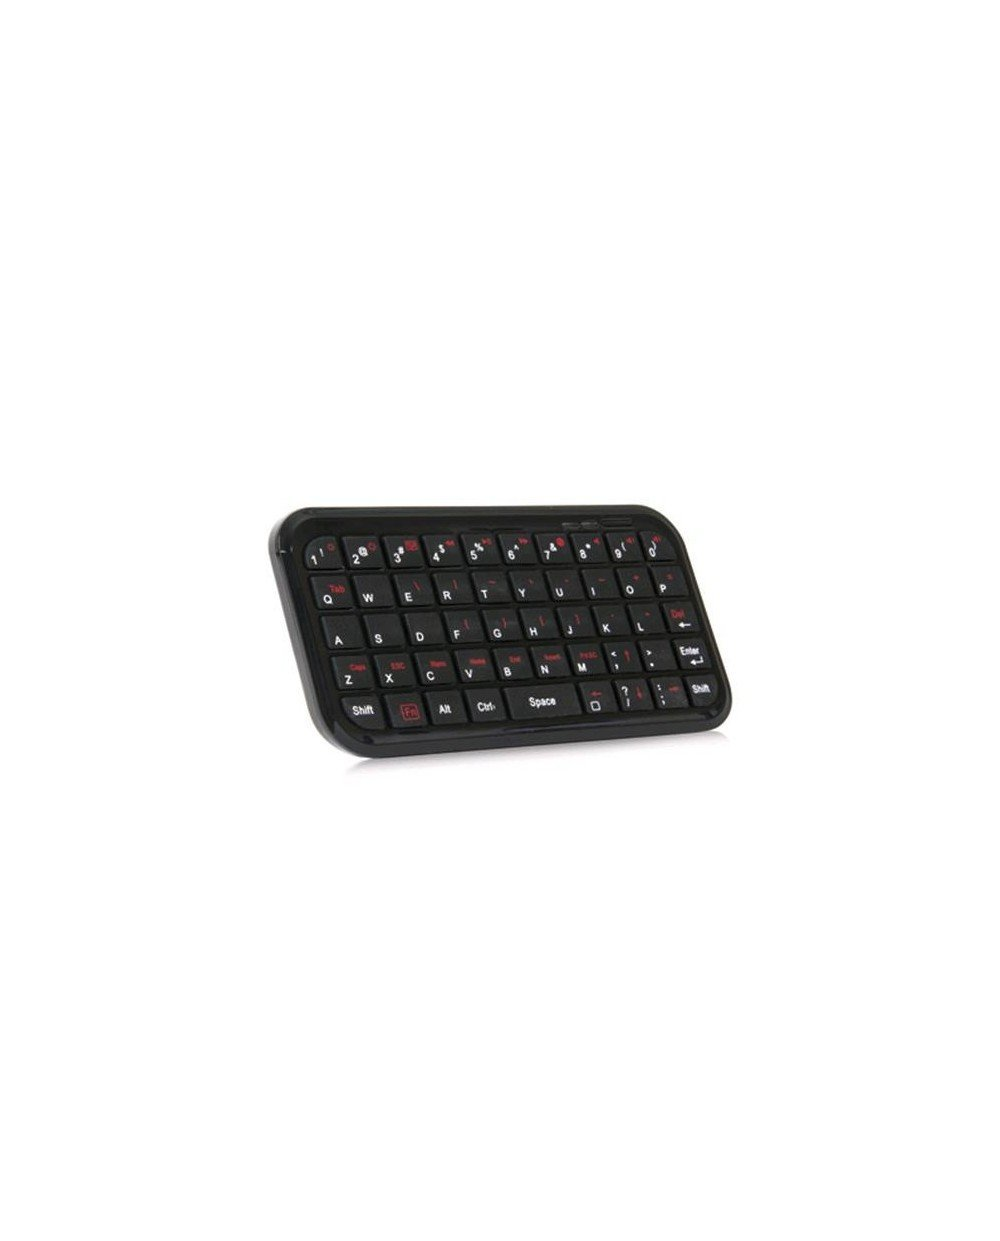 Hamlet XPADKK090BT MINI Bluetooth Keyboard PC / Mac, Numeric Pad